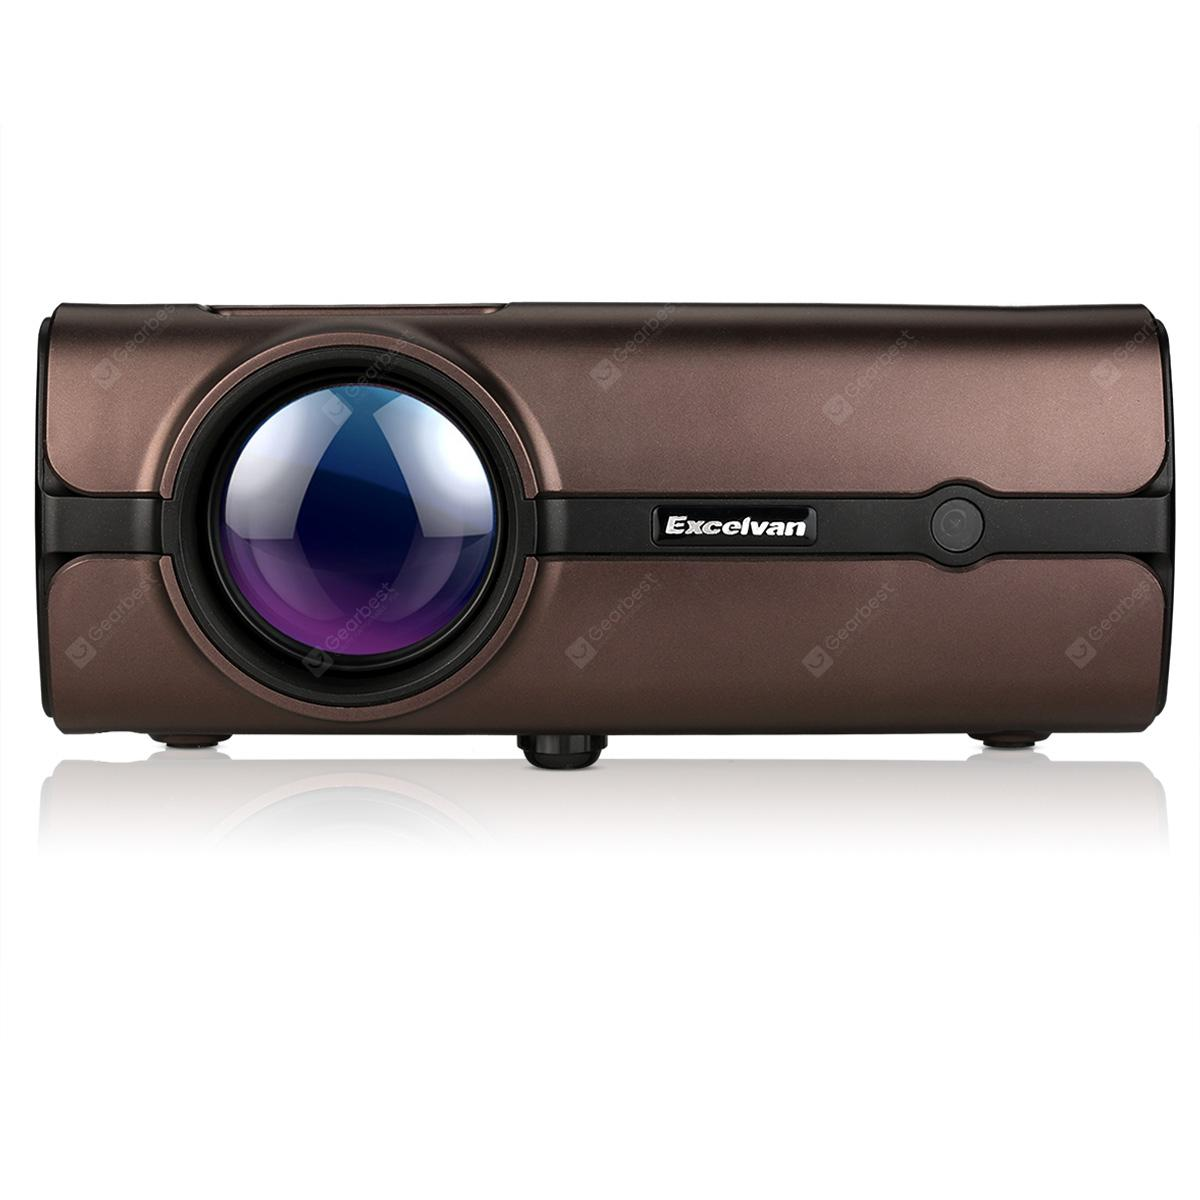 Excelvan BL - 46 1080P Multimedia LCD Projector - BROWN EU